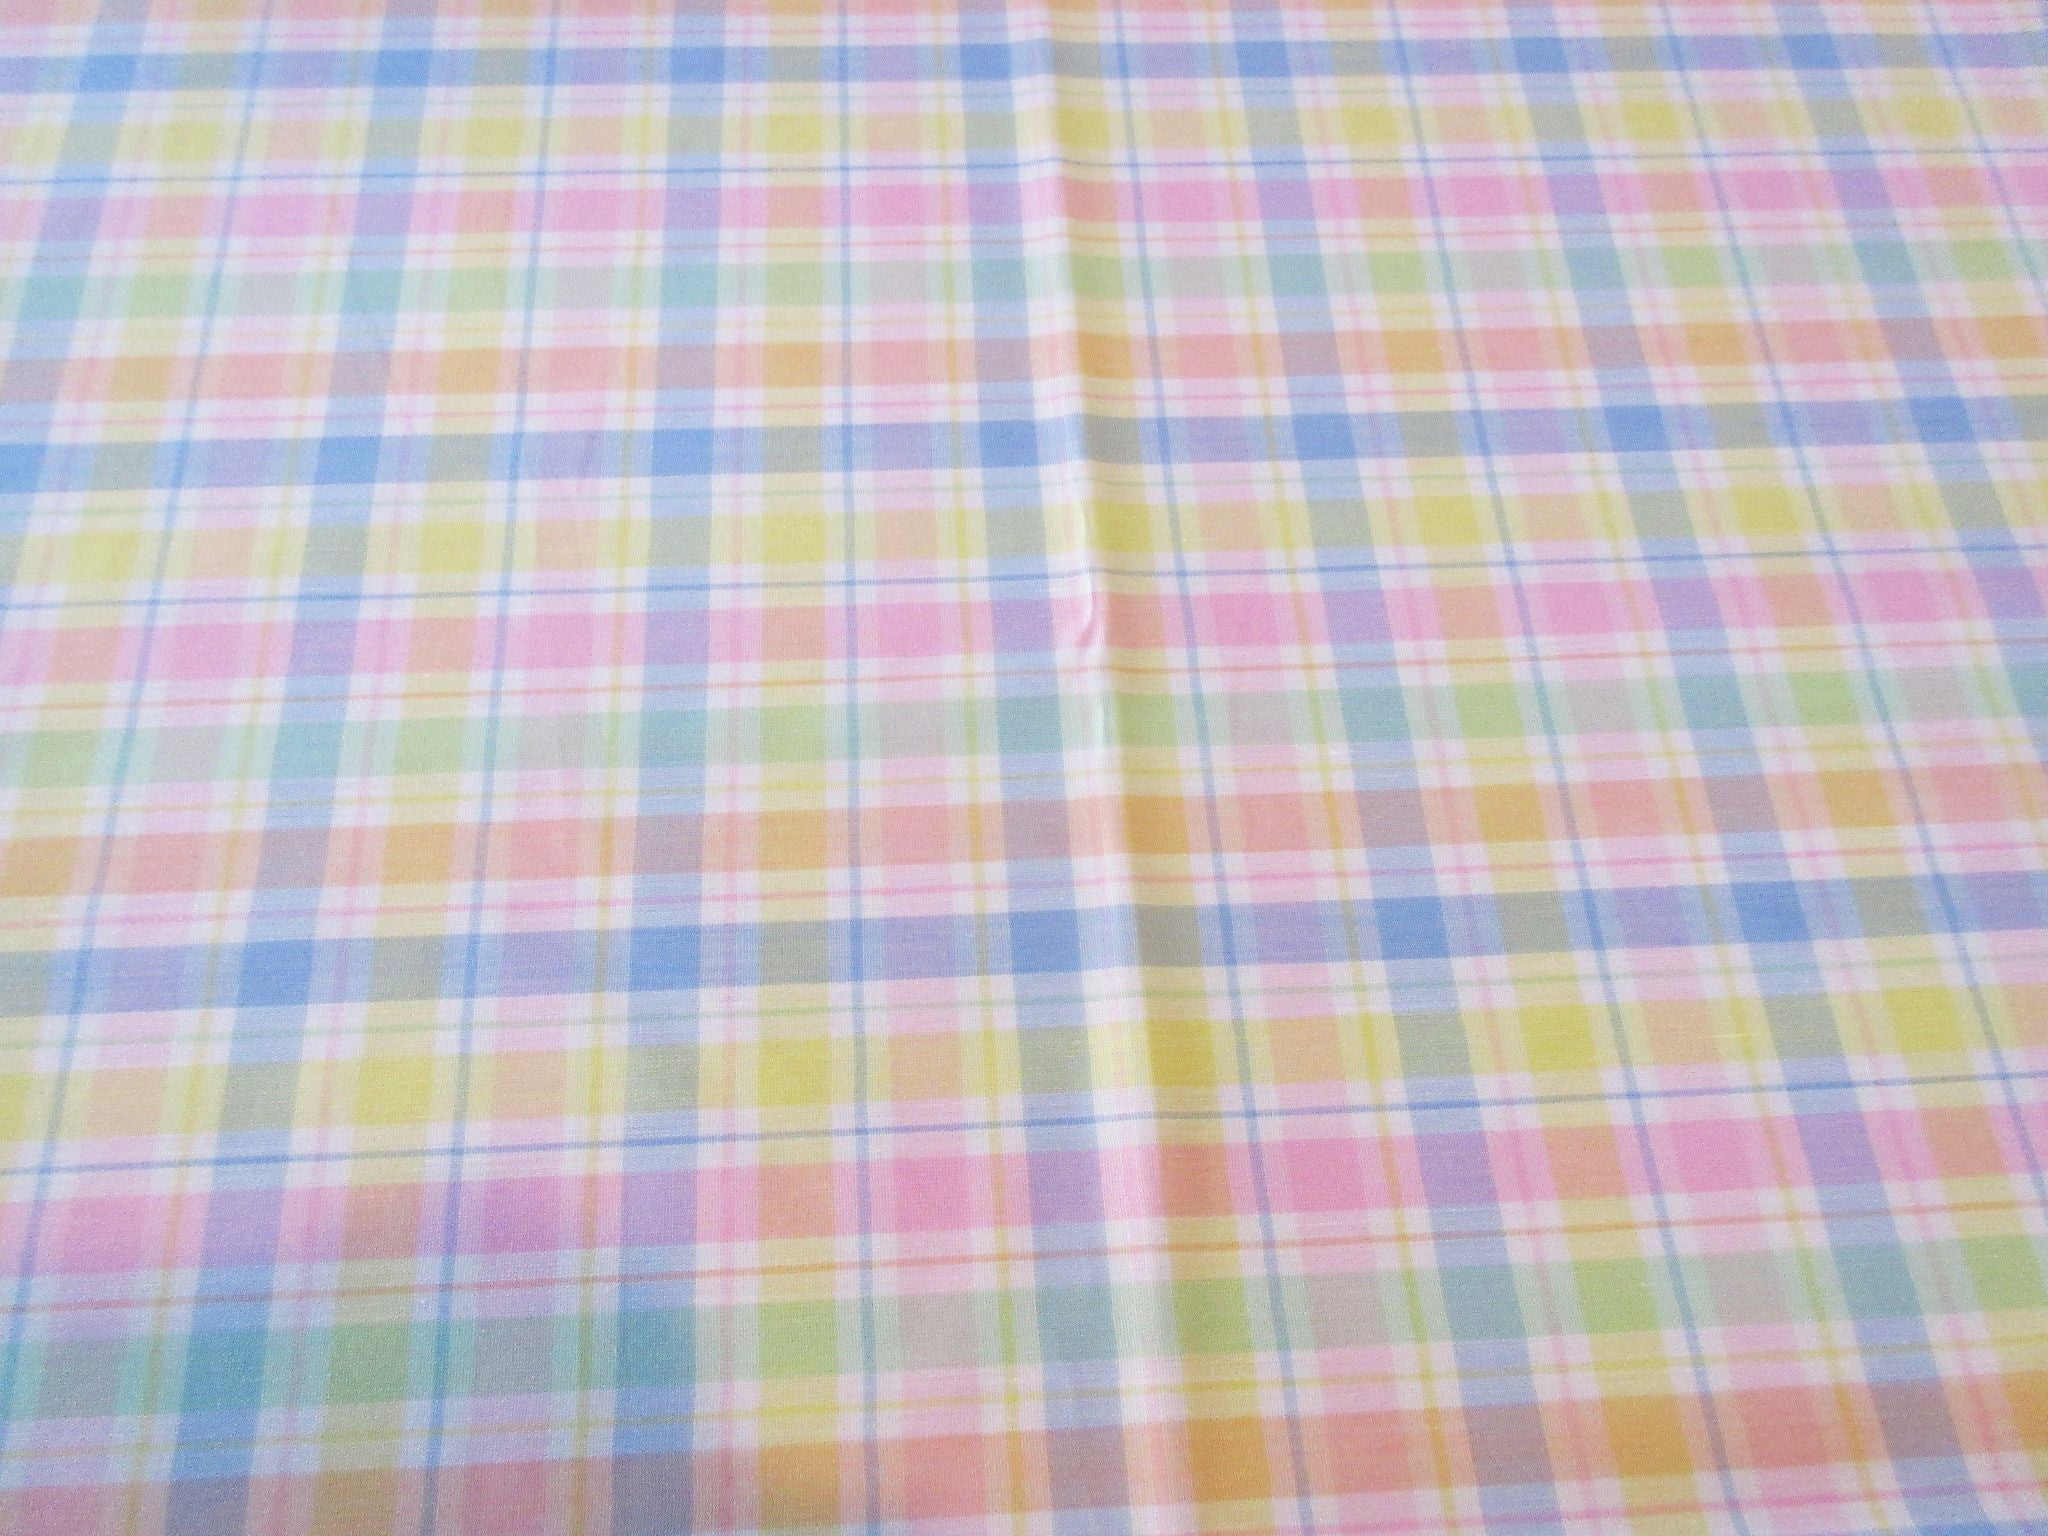 Bright Spring Easter Plaid Pink Blue MWT Novelty Retro Printed Tablecloth (85 X 60)